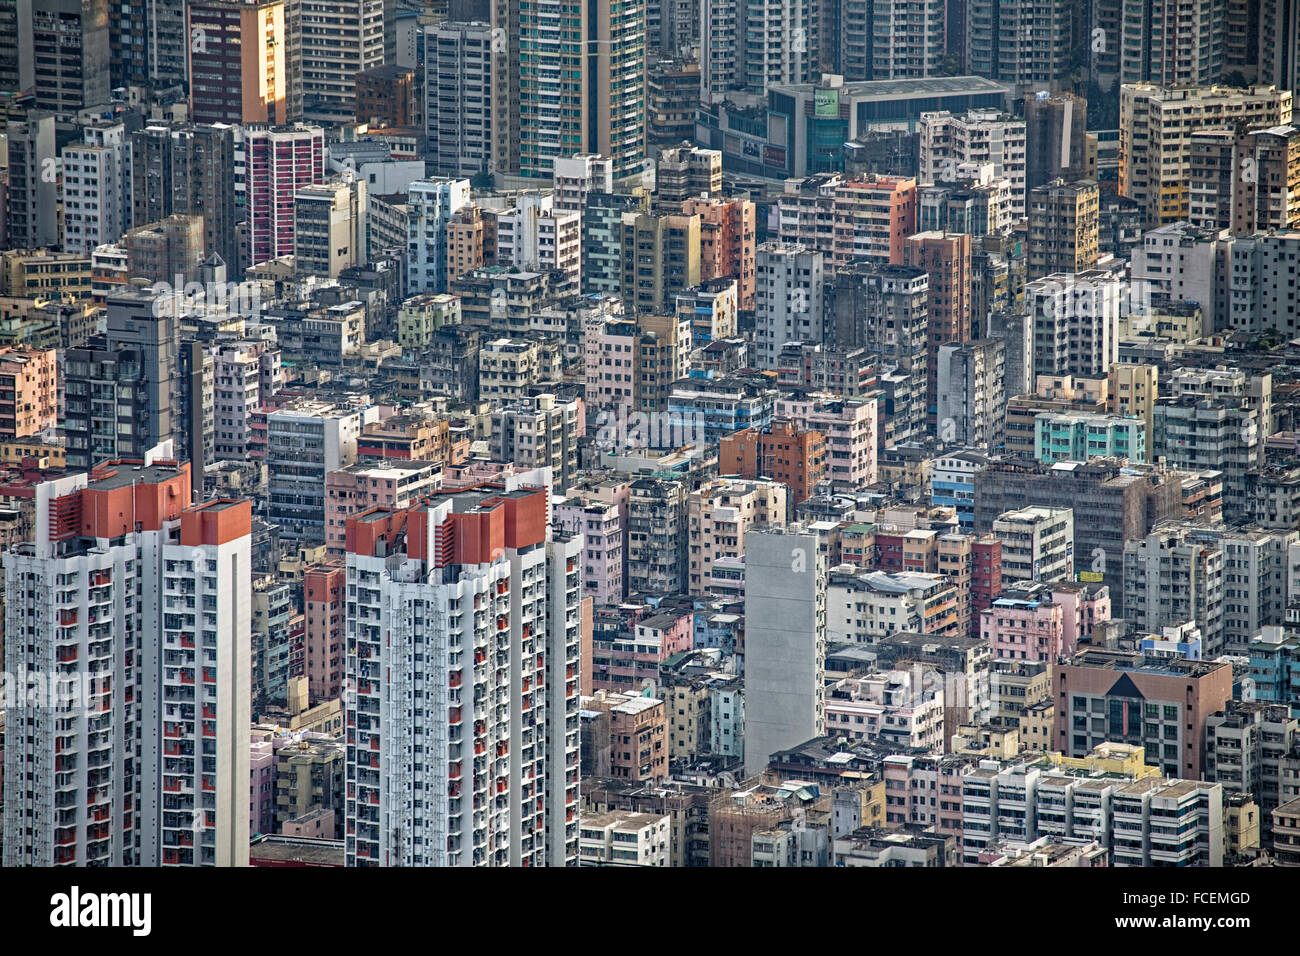 Hong Kong cityscape, crowd buildings at day - Stock Image